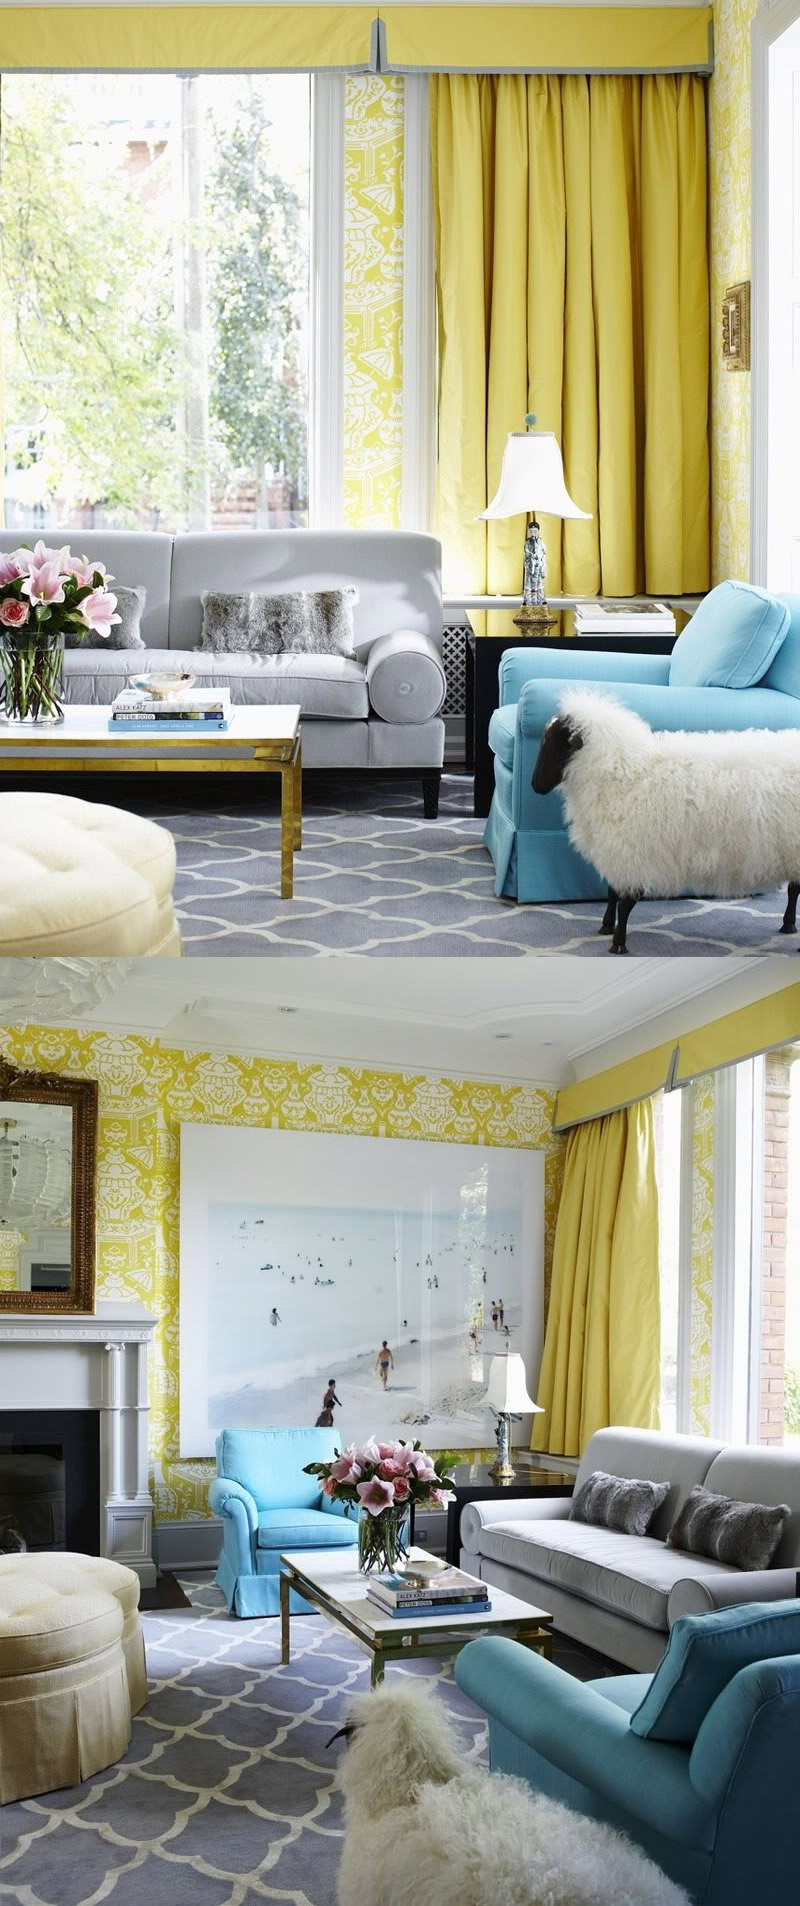 48 Yellow Duck Egg Blue Grey Living Room Interior Design